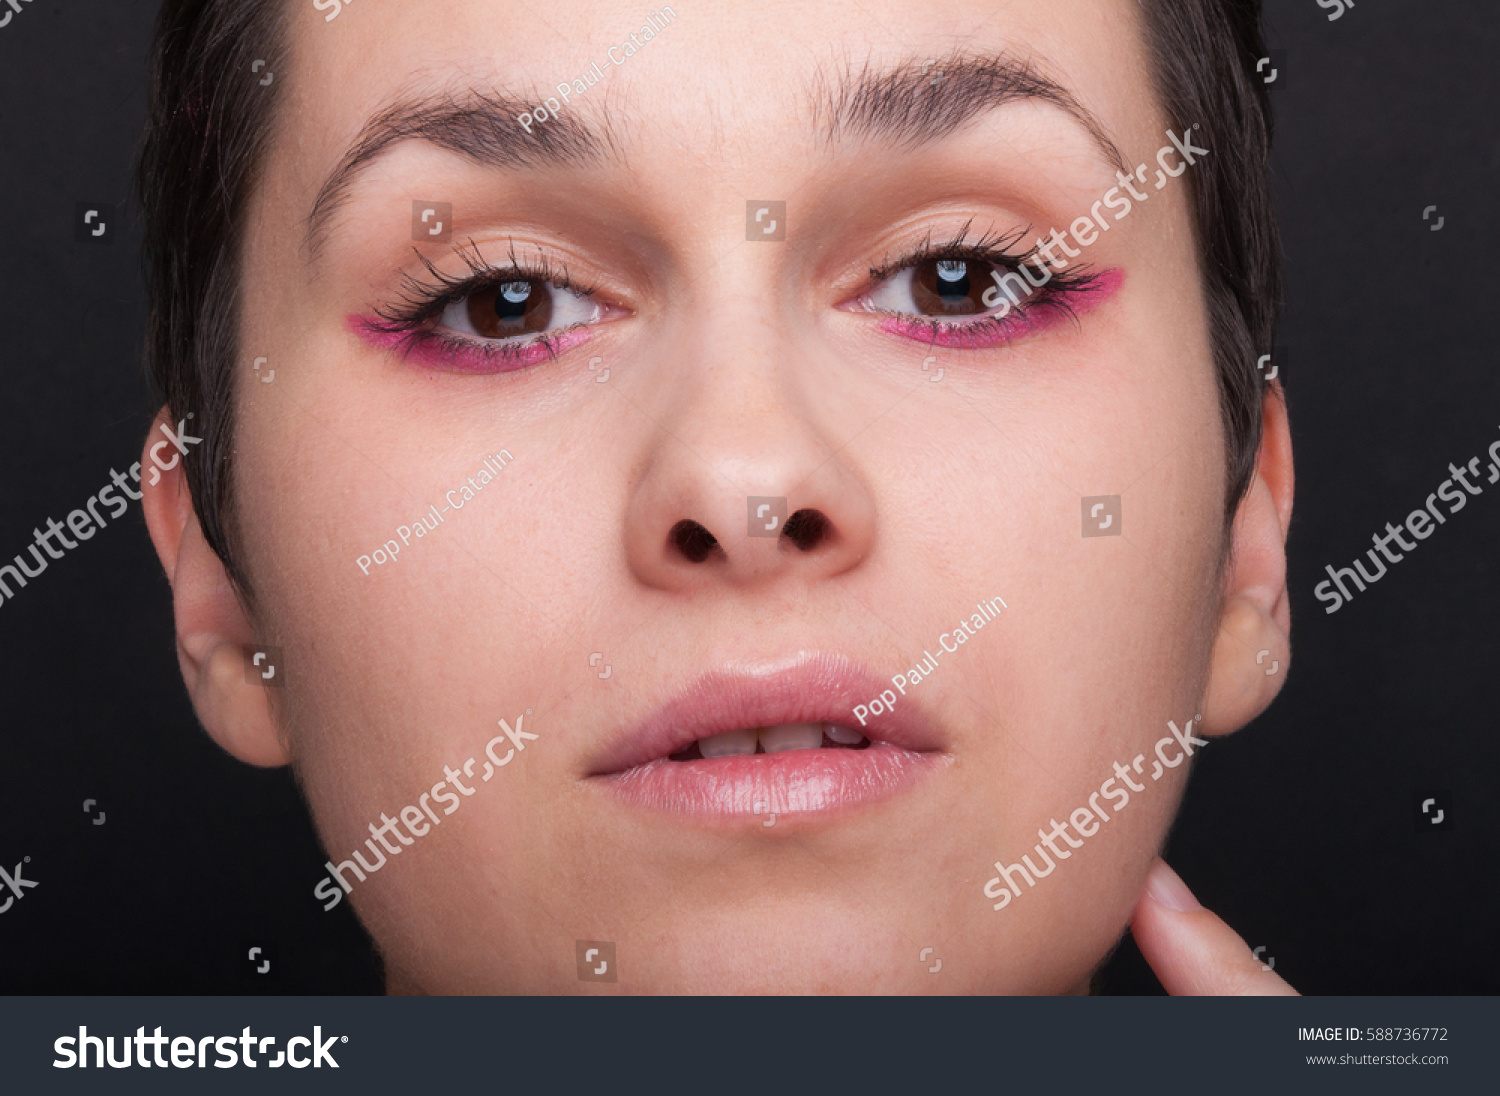 Grimace face clip art stock photo woman pulls a face in upset - Closeup Woman Face In Close Up View With Trendy Make Up On Black Baskground